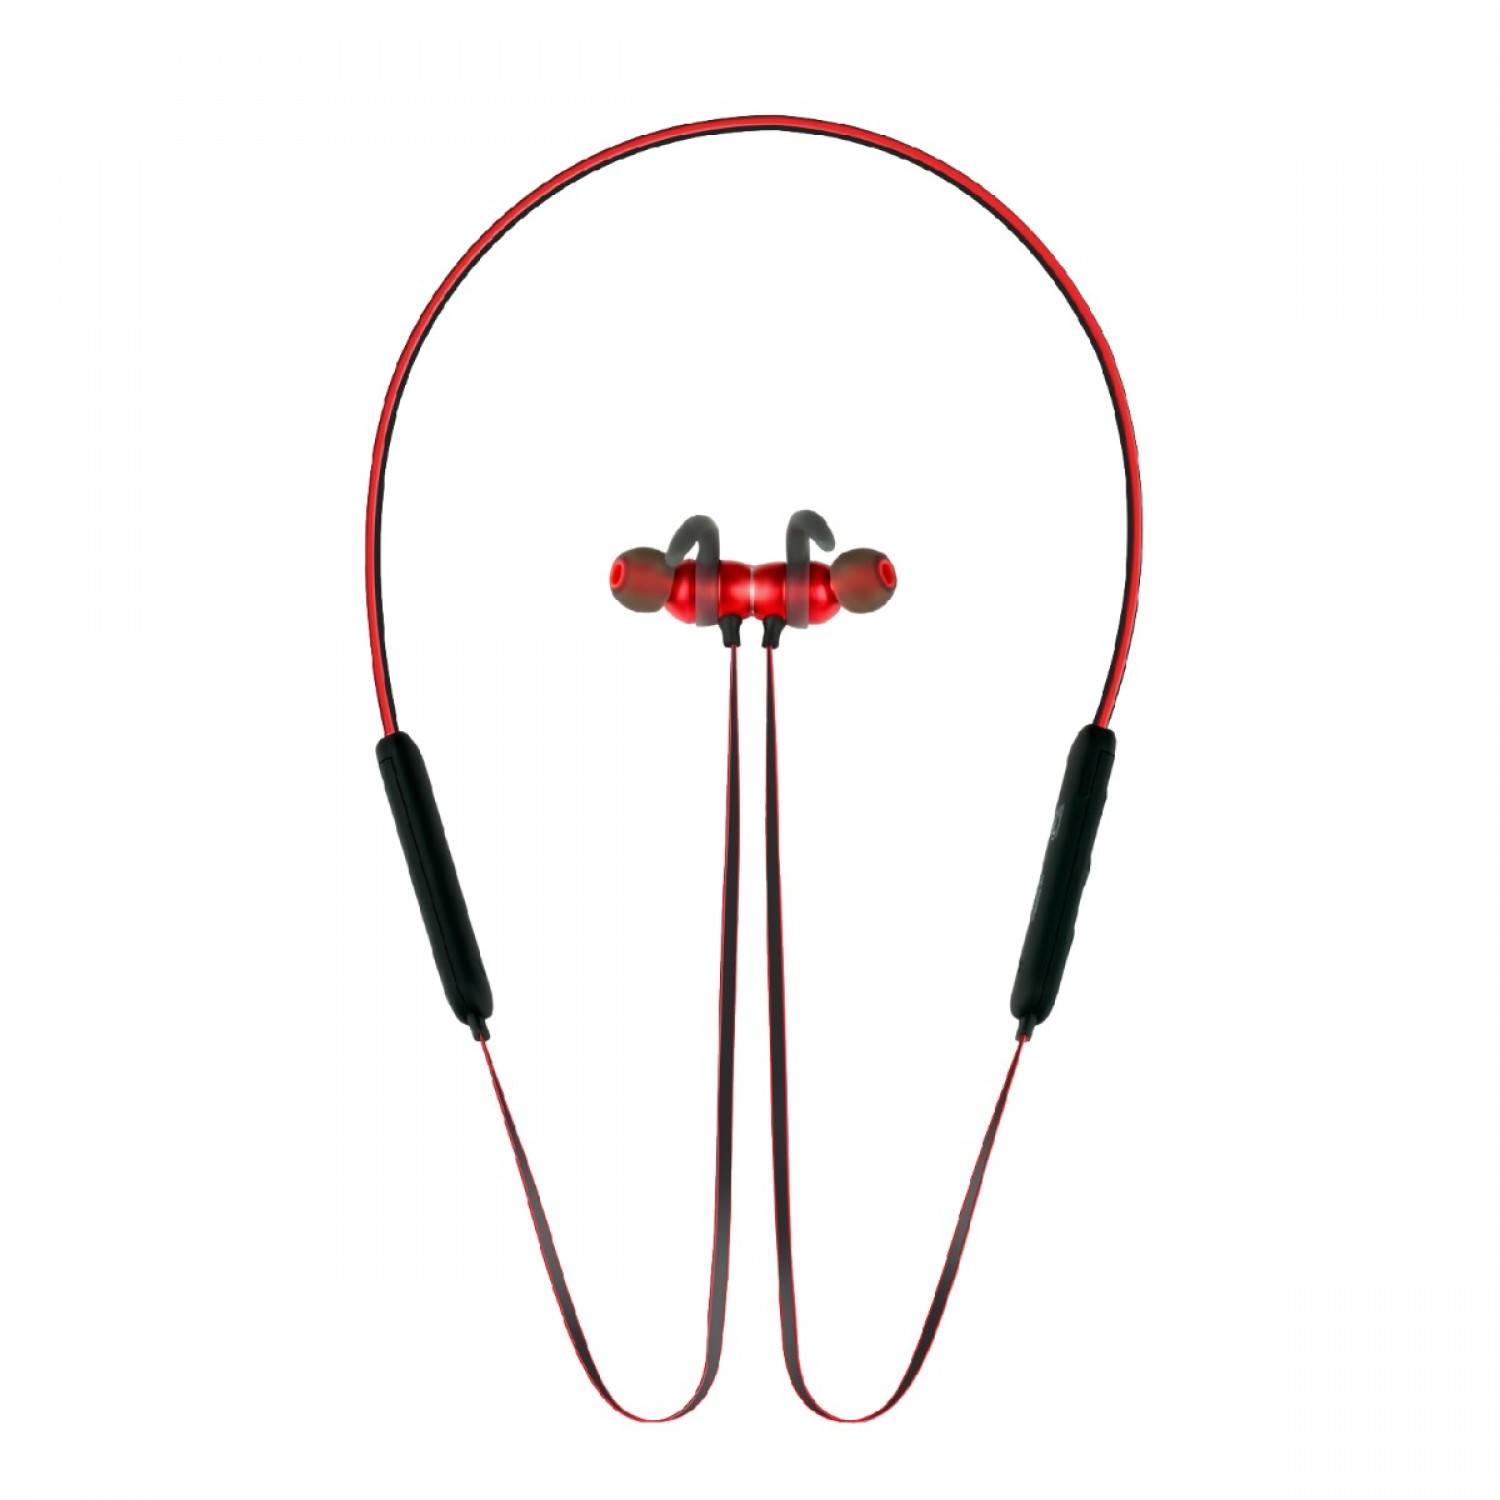 Promate Bluetooth Headphone, High Definition Wireless Neckband Headset with Built-In Microphone, Noise Cancelling and Magnetic Earphones for All Bluetooth Enabled Devices Spicy-1 Red